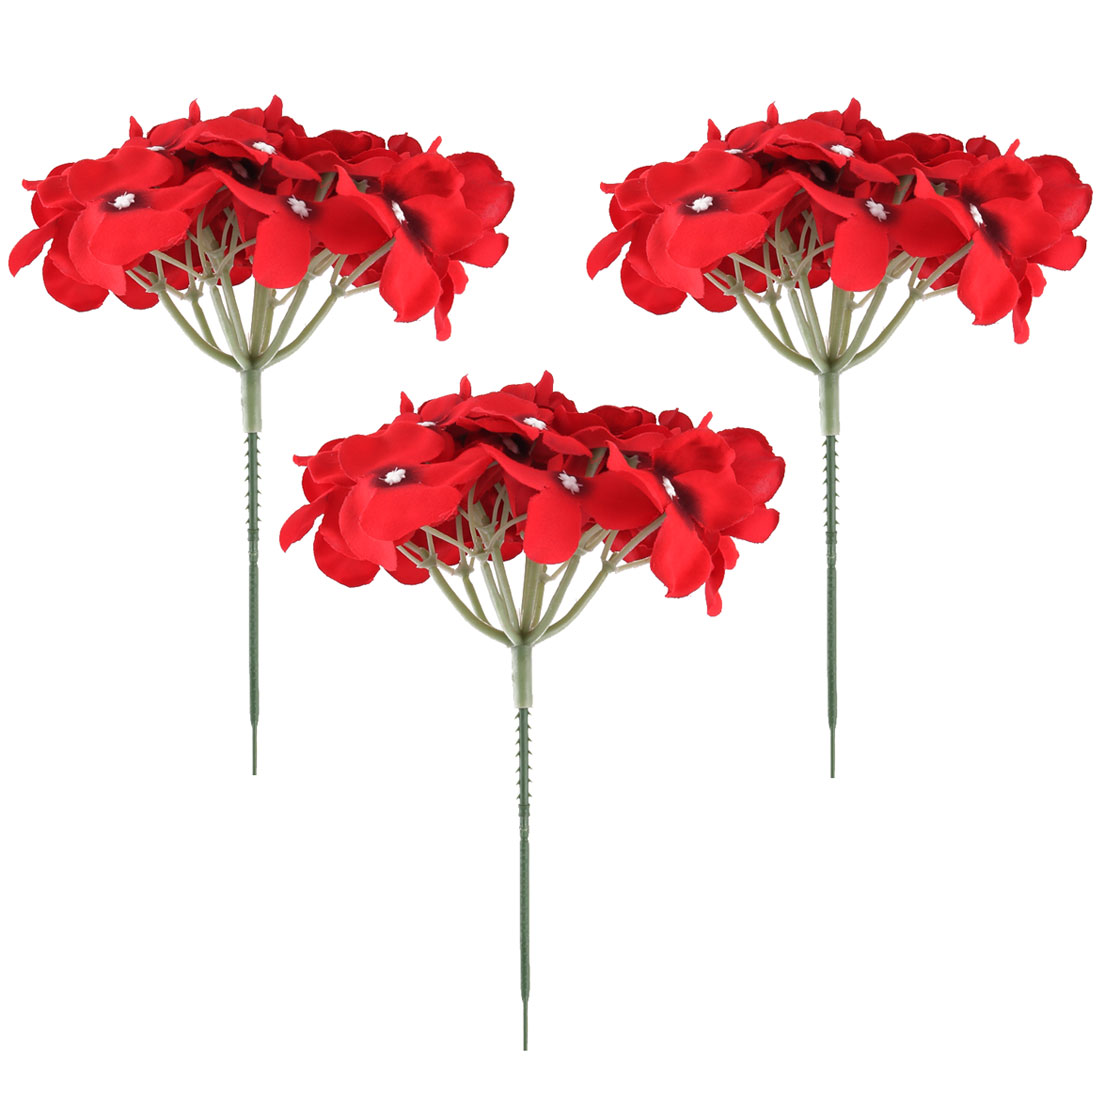 Wedding Fabric Emulation Artificial Flower Head Decorative Petals Craft Red 3pcs